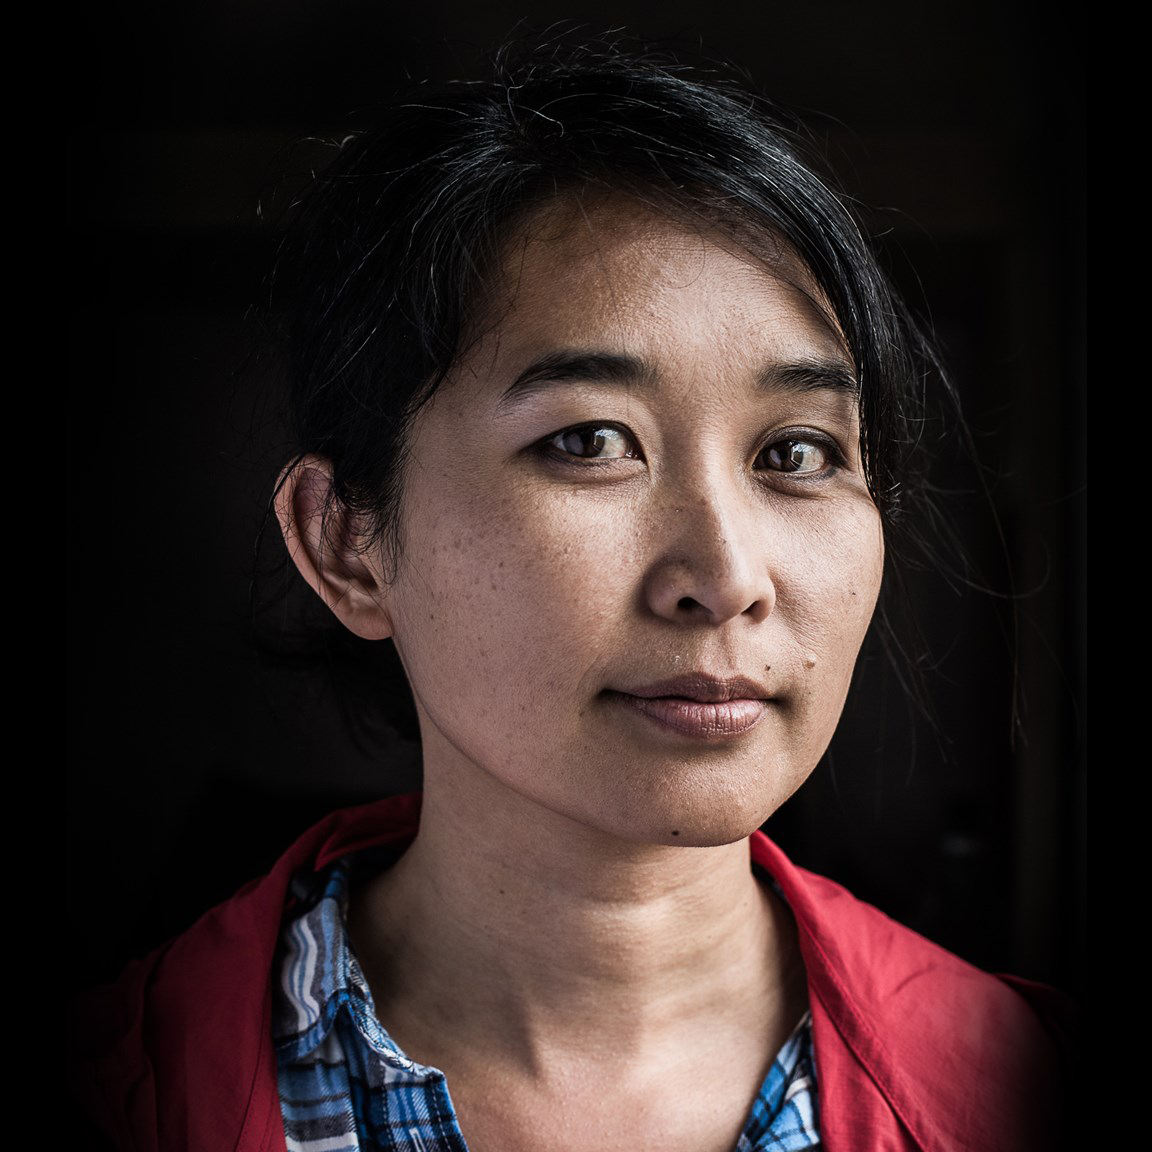 OZY: From Refugee to Graphic Novelist—a Story Four Decades in the Making - For Thi Bui, 12 years is how long it took to get the story she wanted to tell where it needed to be. And now, at 42, she's published her first graphic novel, The Best We Could Do . . .